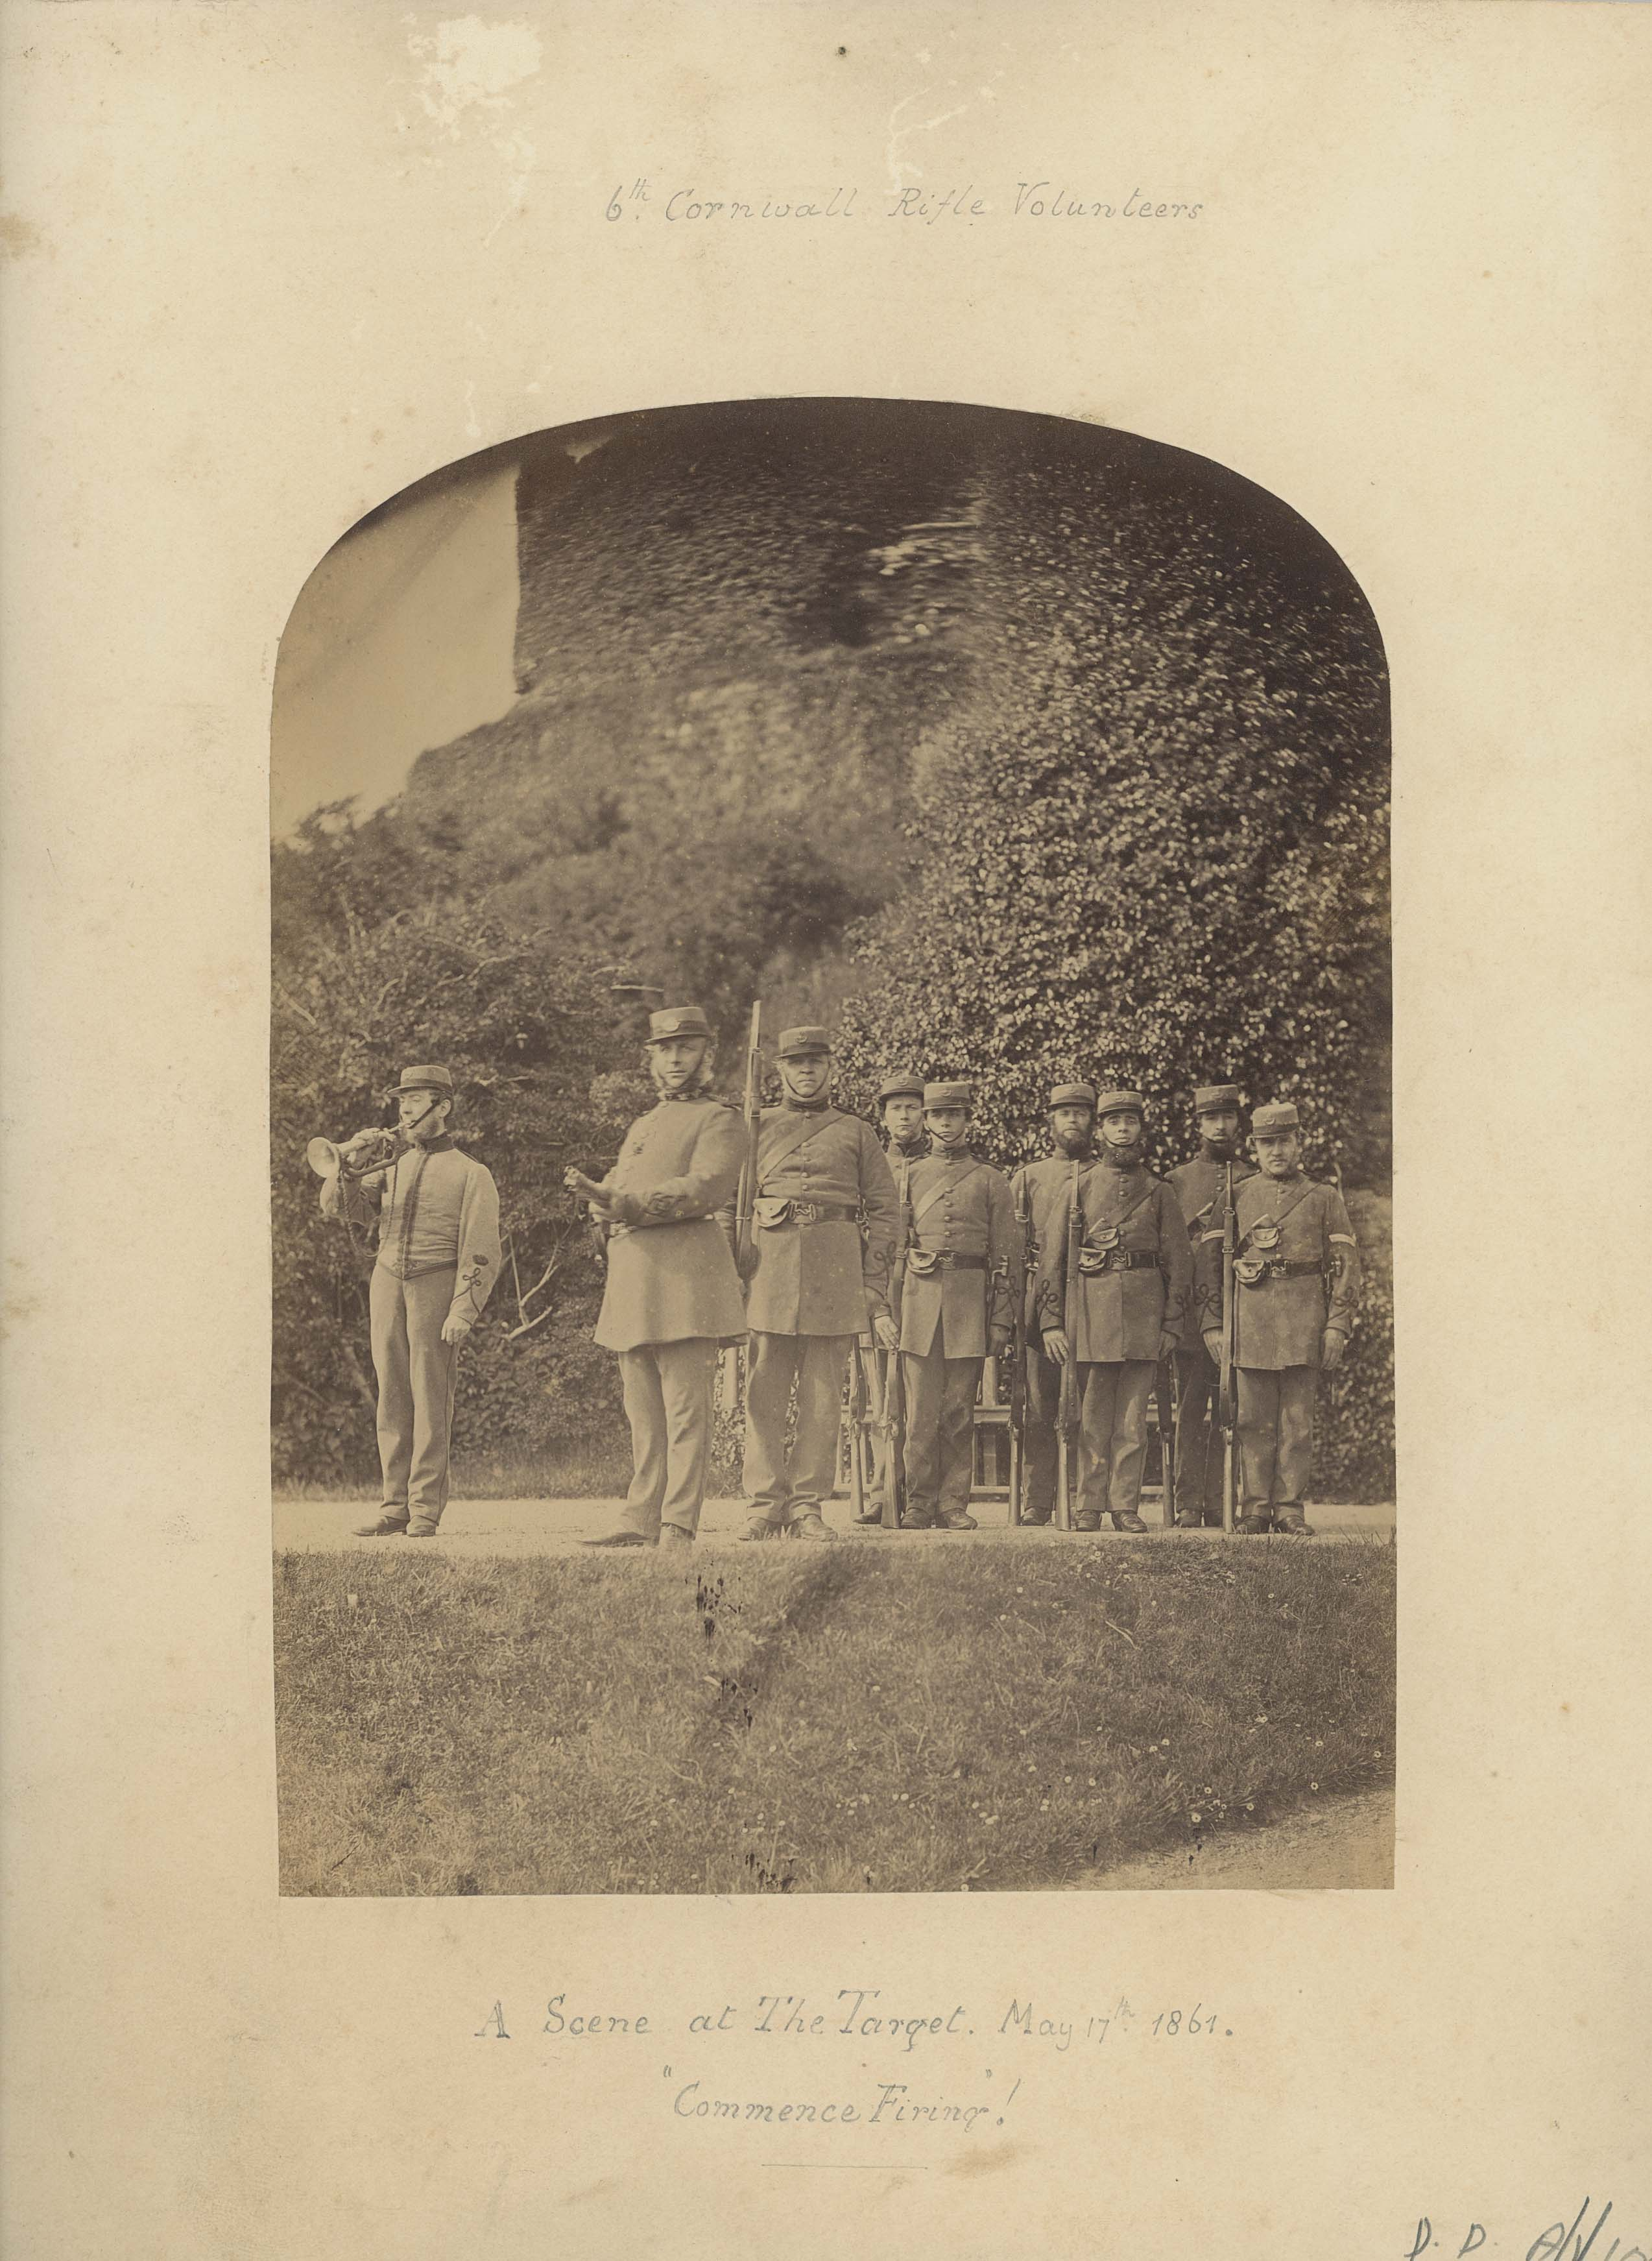 Photographs, 6th Cornwall Rifle Volunteers